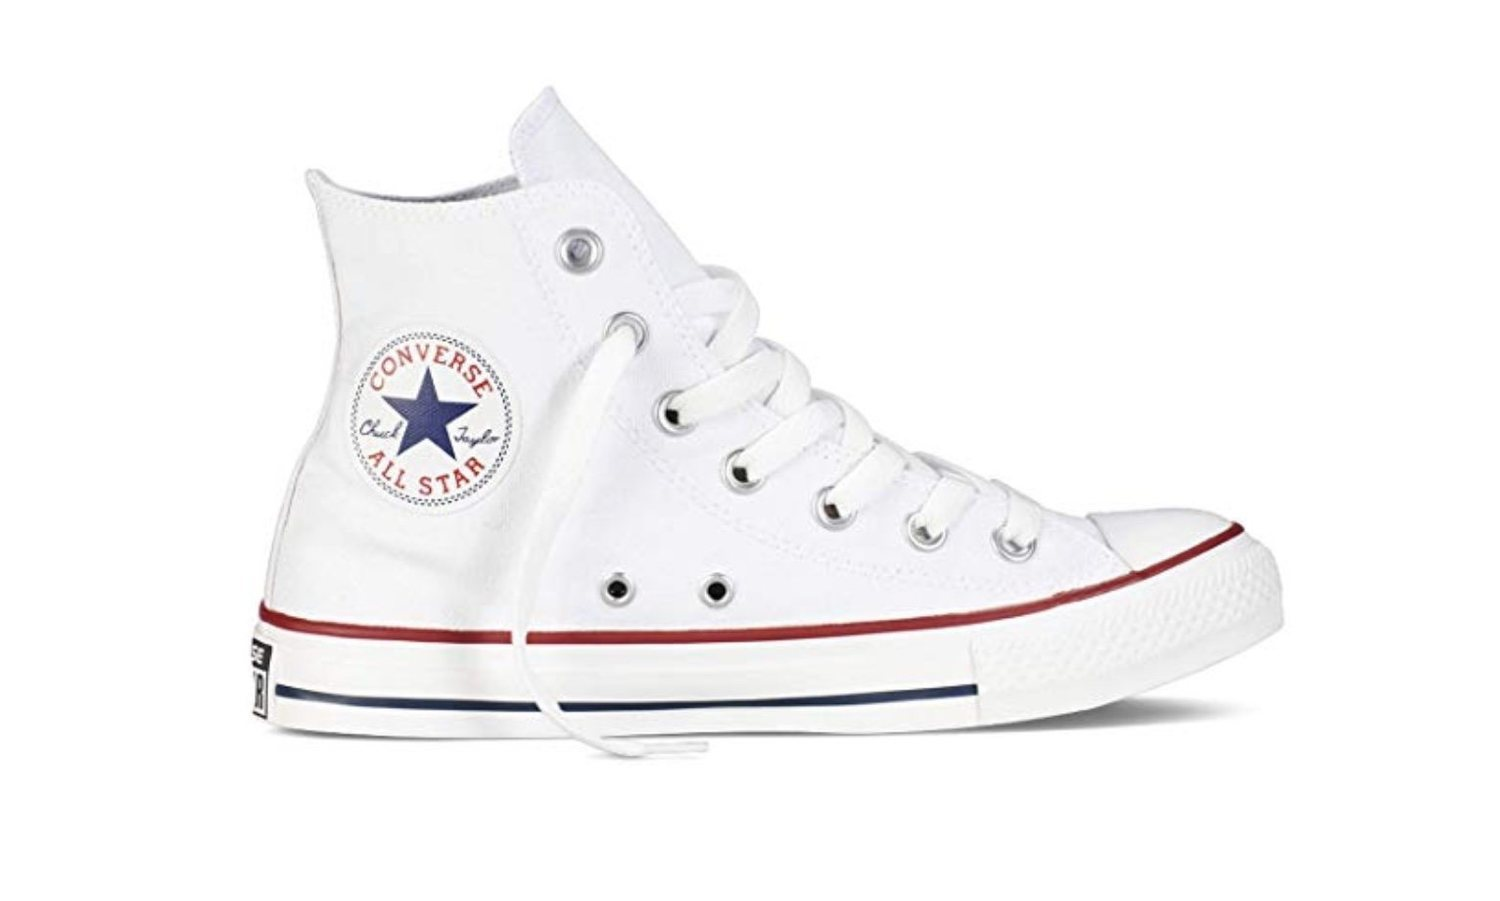 Converse Chuck Taylor All-Star.